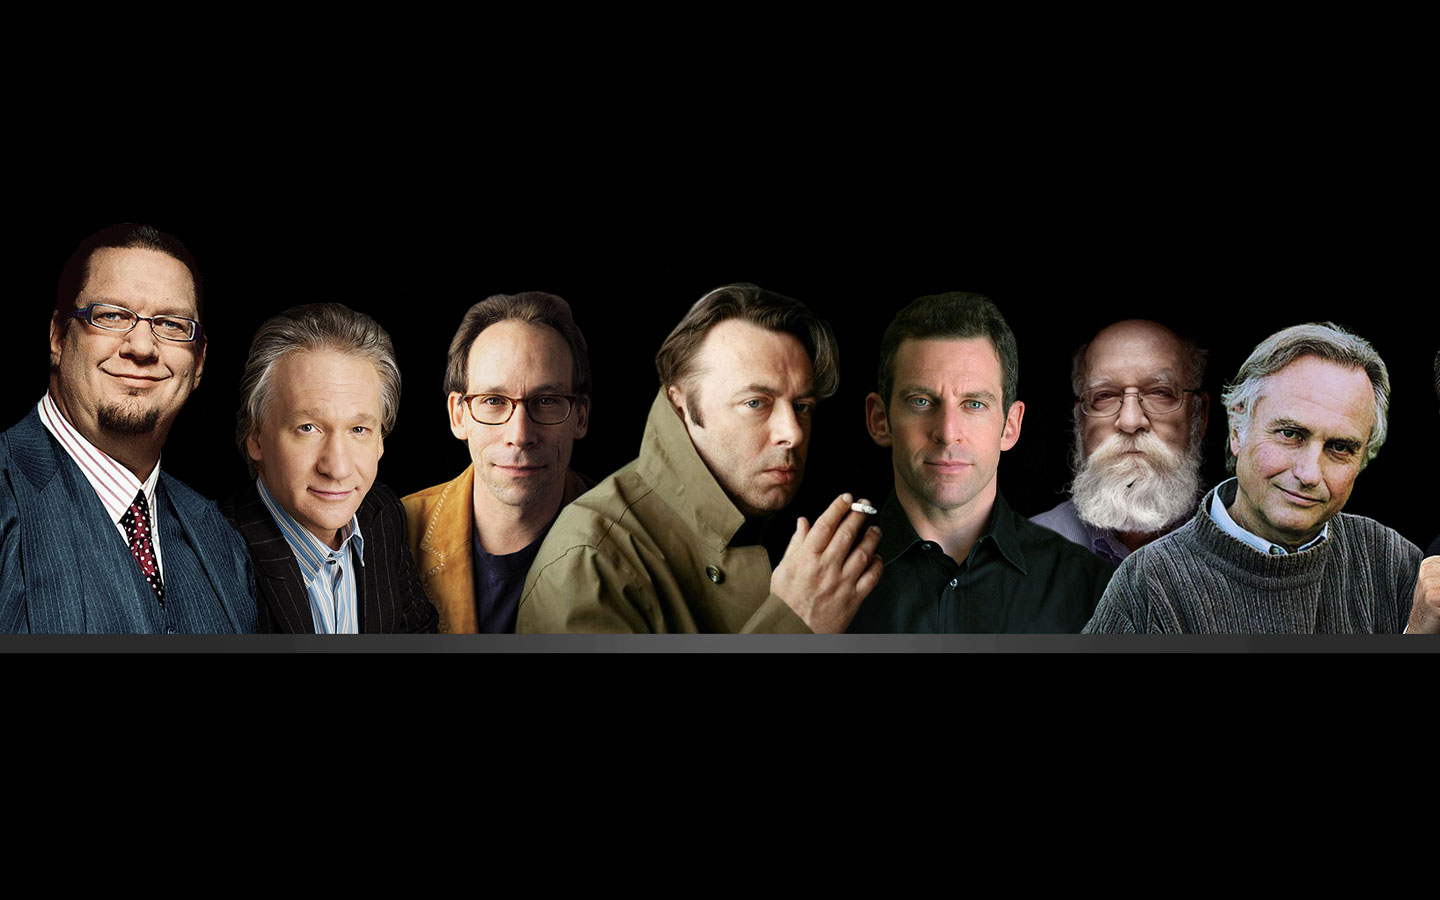 Could Atheism Be True?